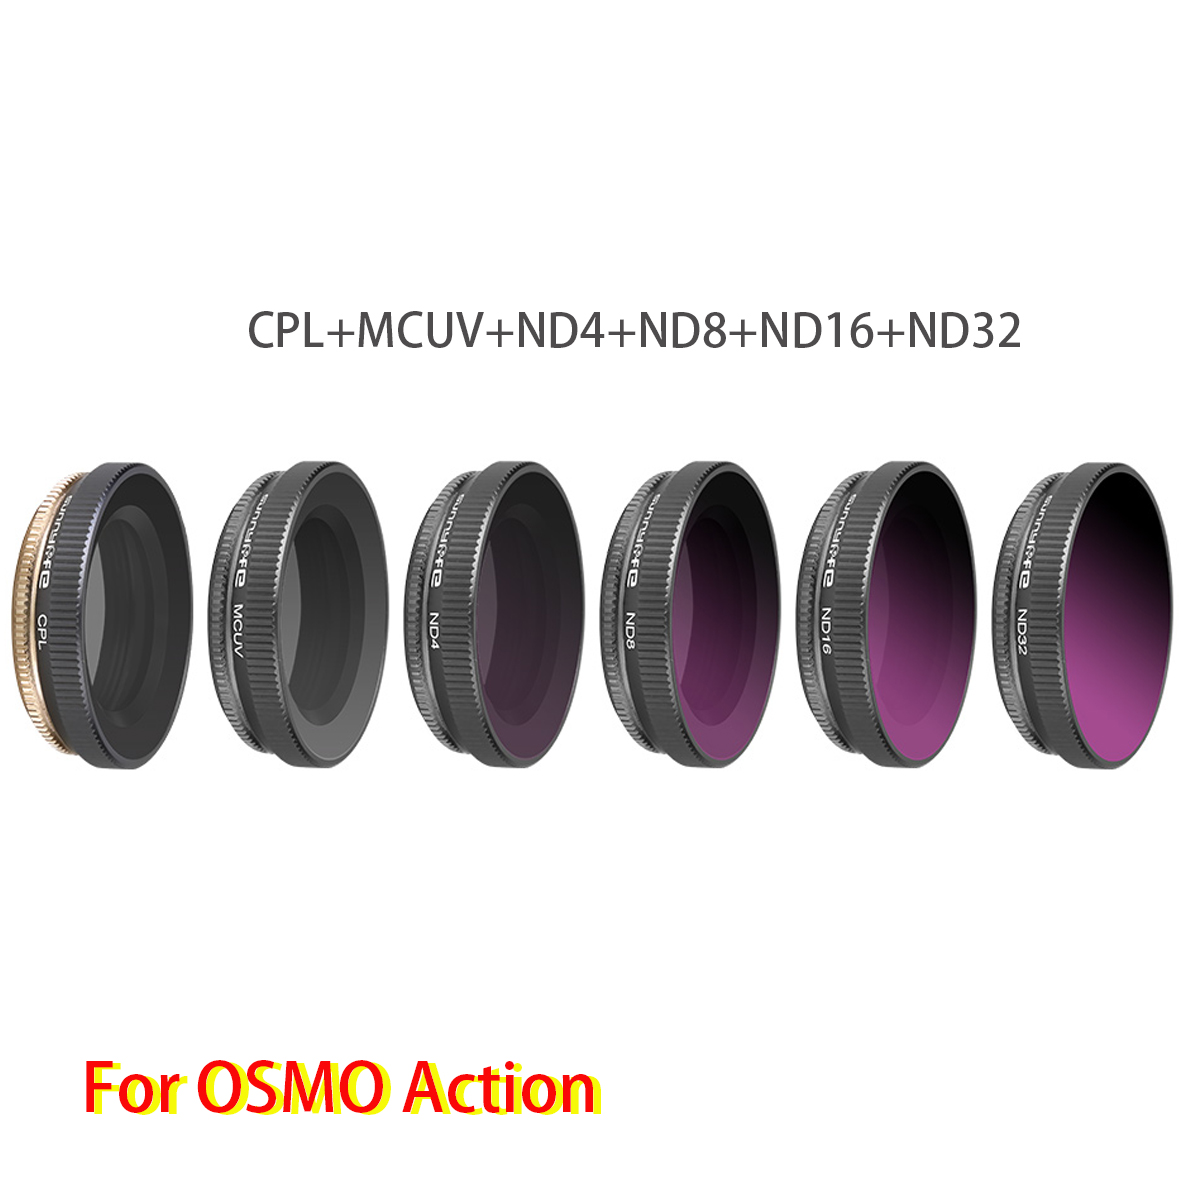 Adjustable High Quality Lens Filters Set 6 in 1 MCUV+CPL+ND4+ND8+ND16+ND32 for DJI OSMO Action Sports Camera Accessories-in Camera Filters from Consumer Electronics